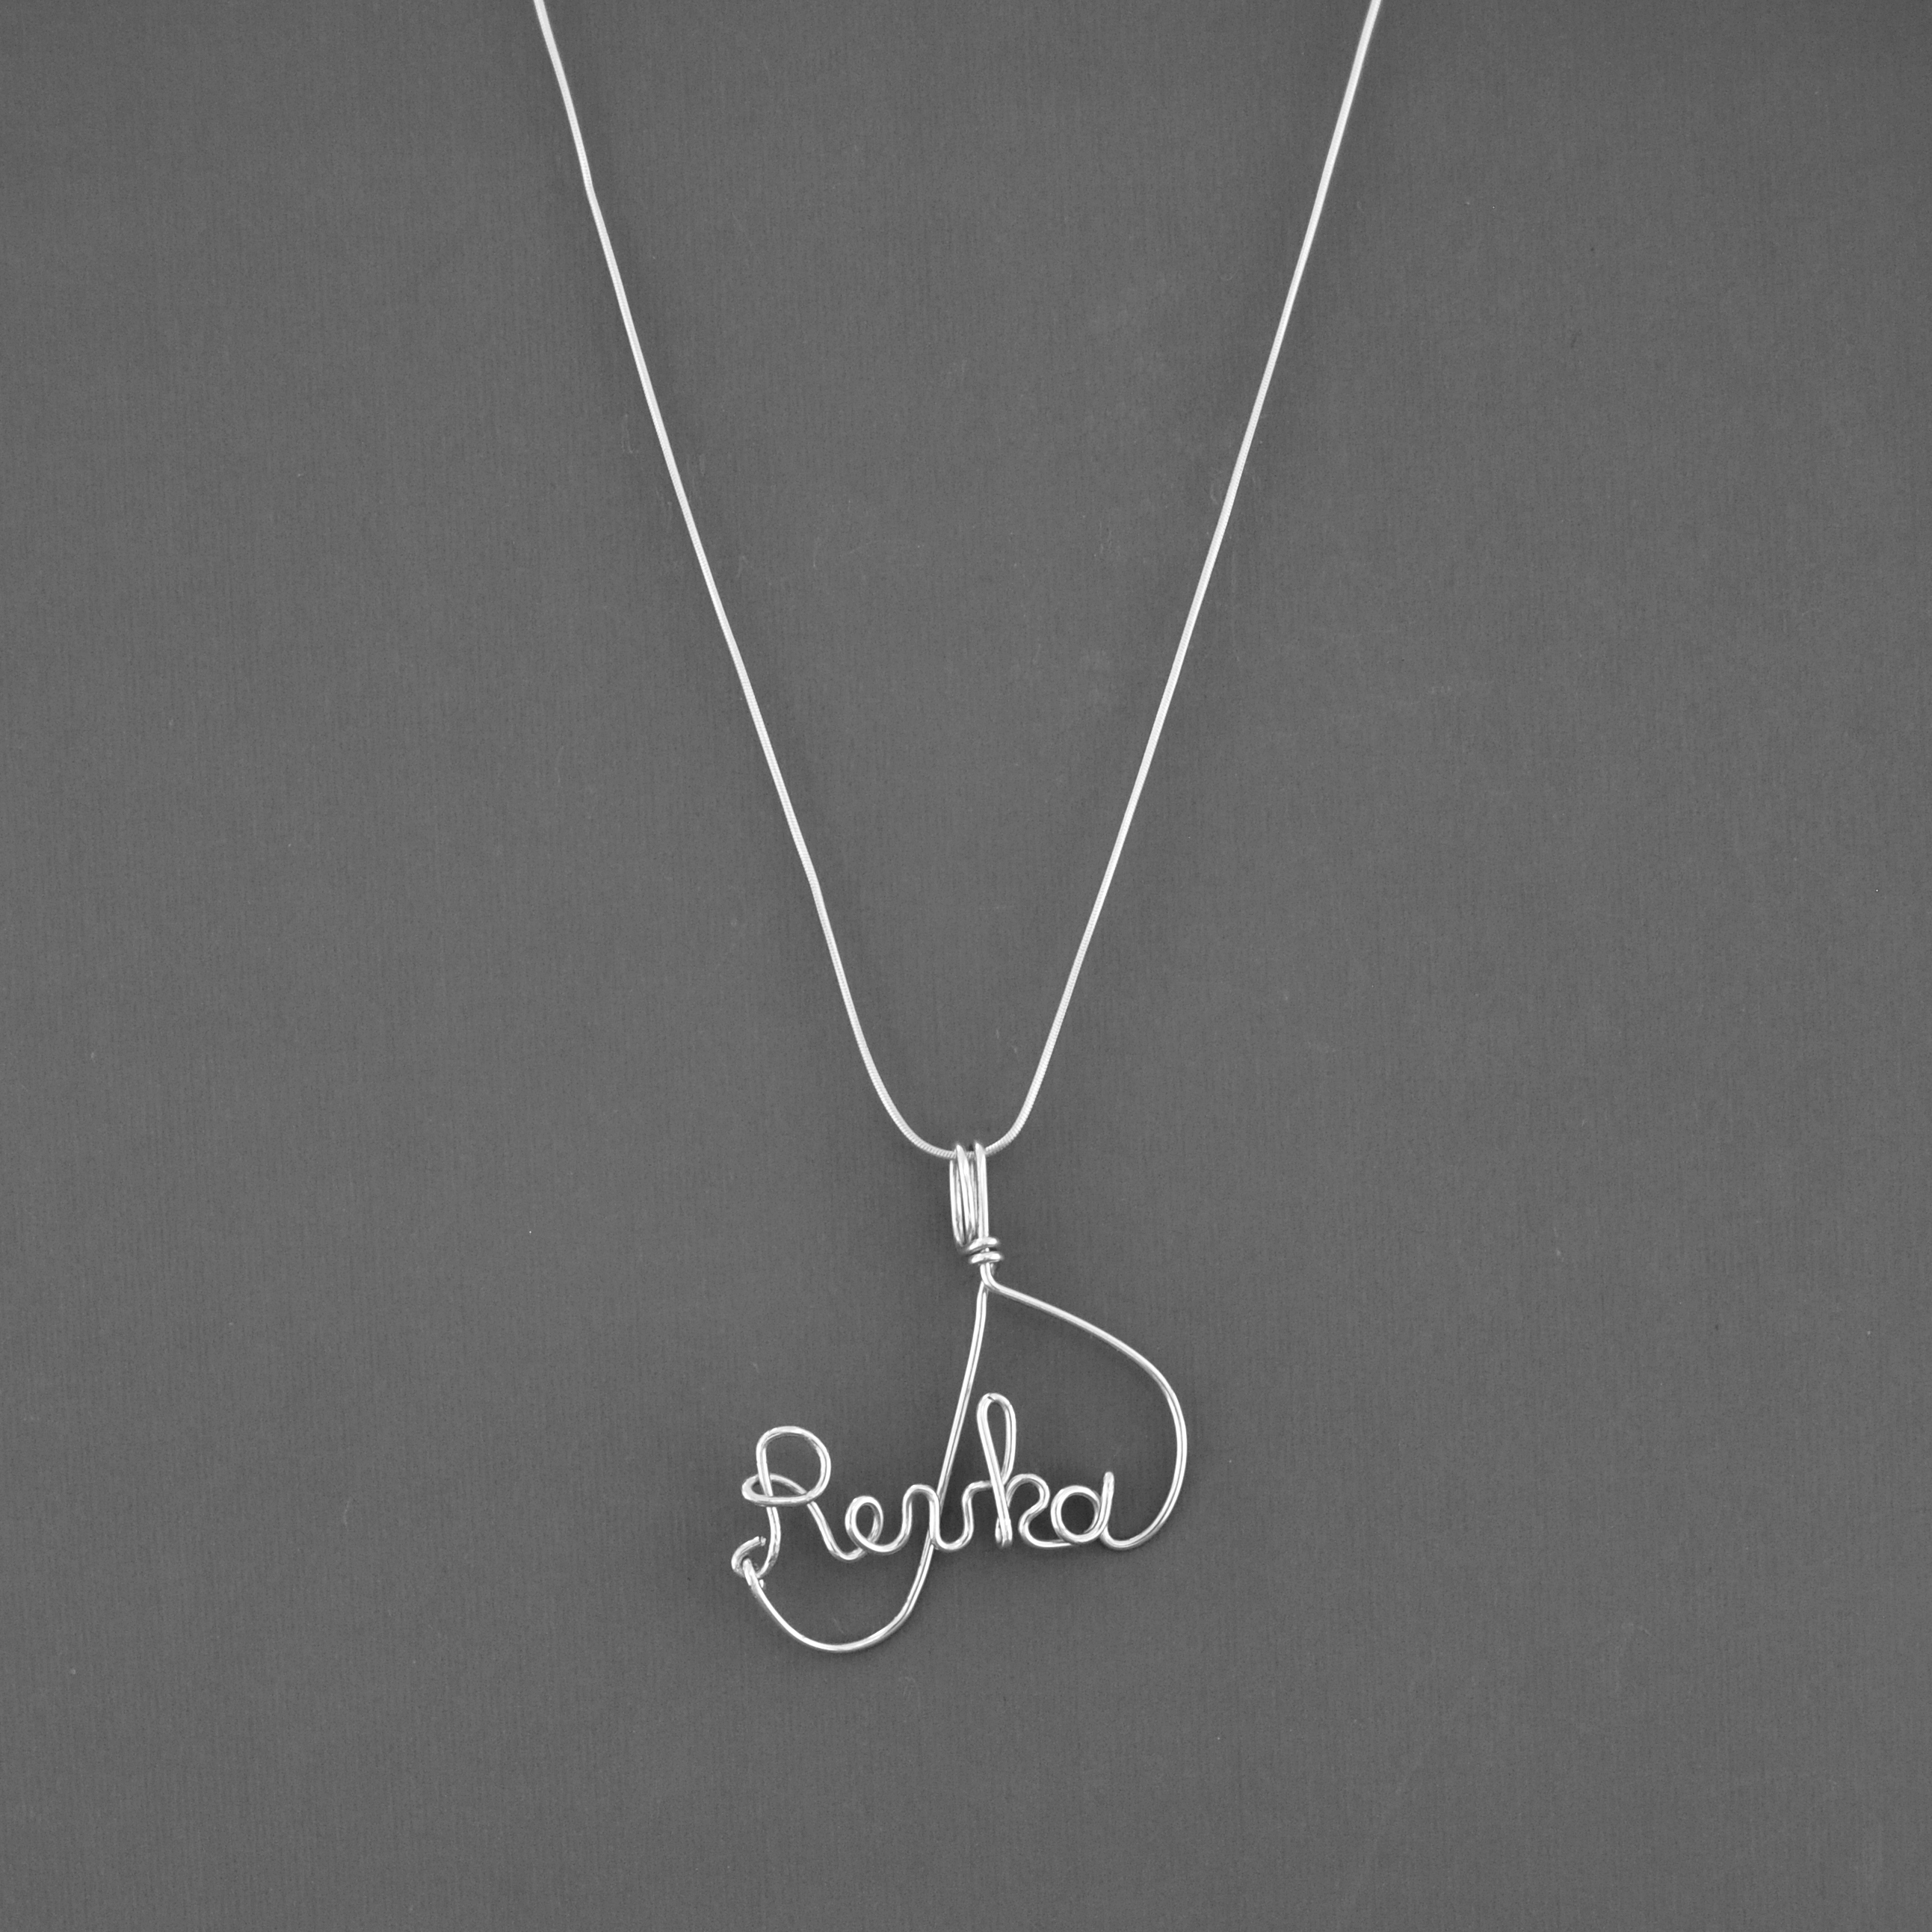 samuel s olivia name sterling silver necklace jewellery d h number webstore children product